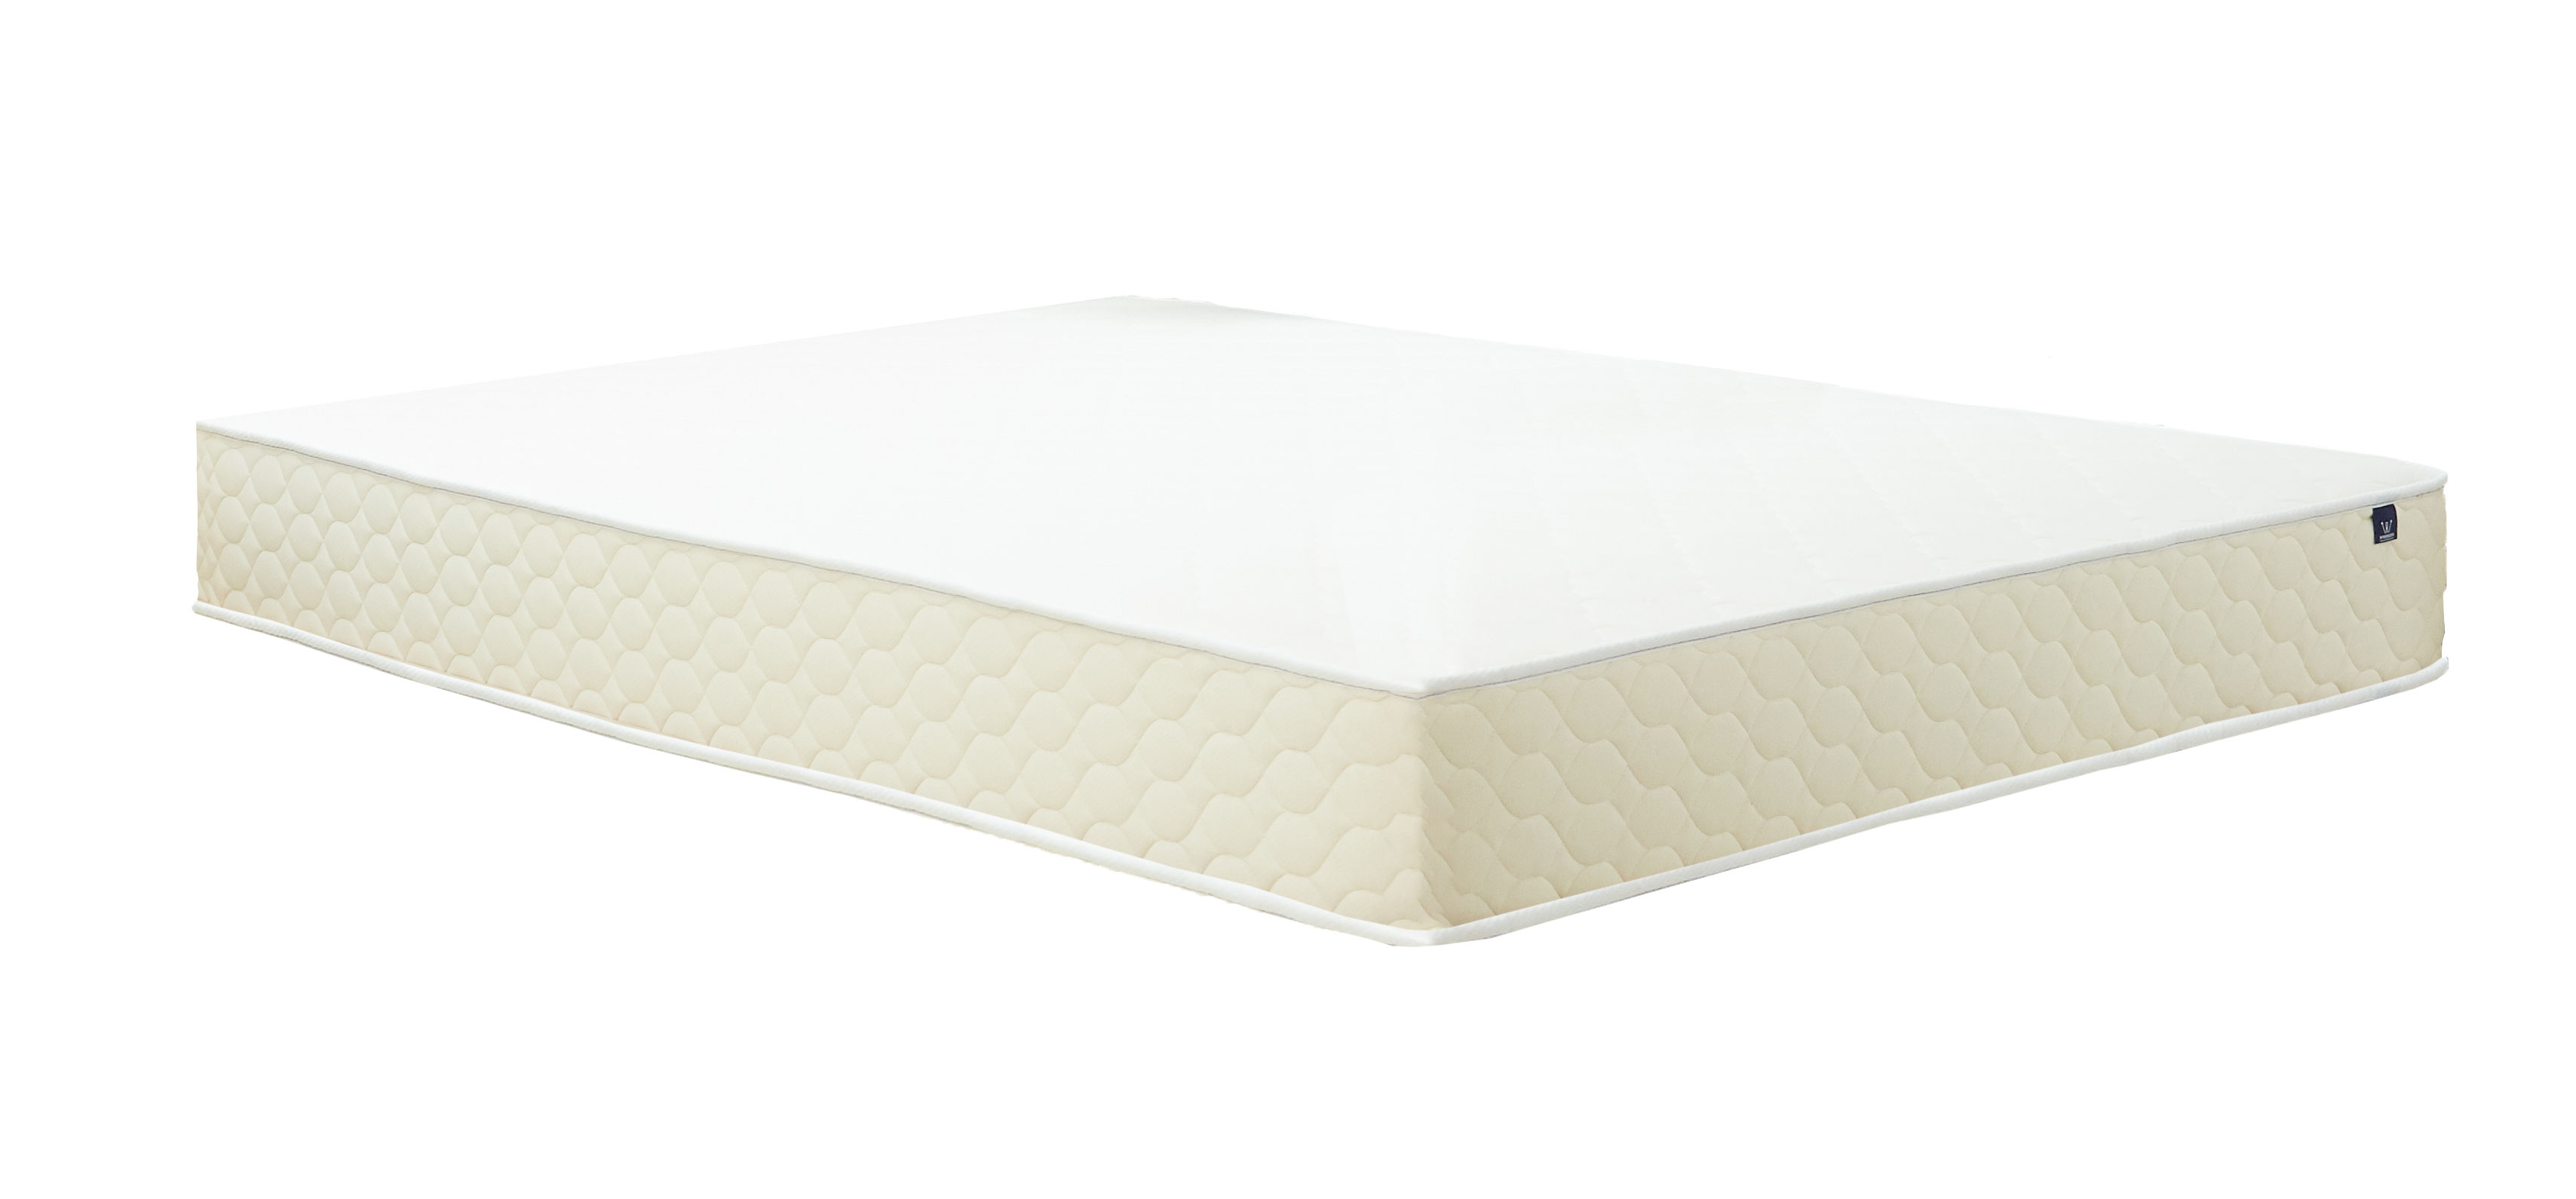 Best for Average Weight Sleepers – Ecocloud Mattress